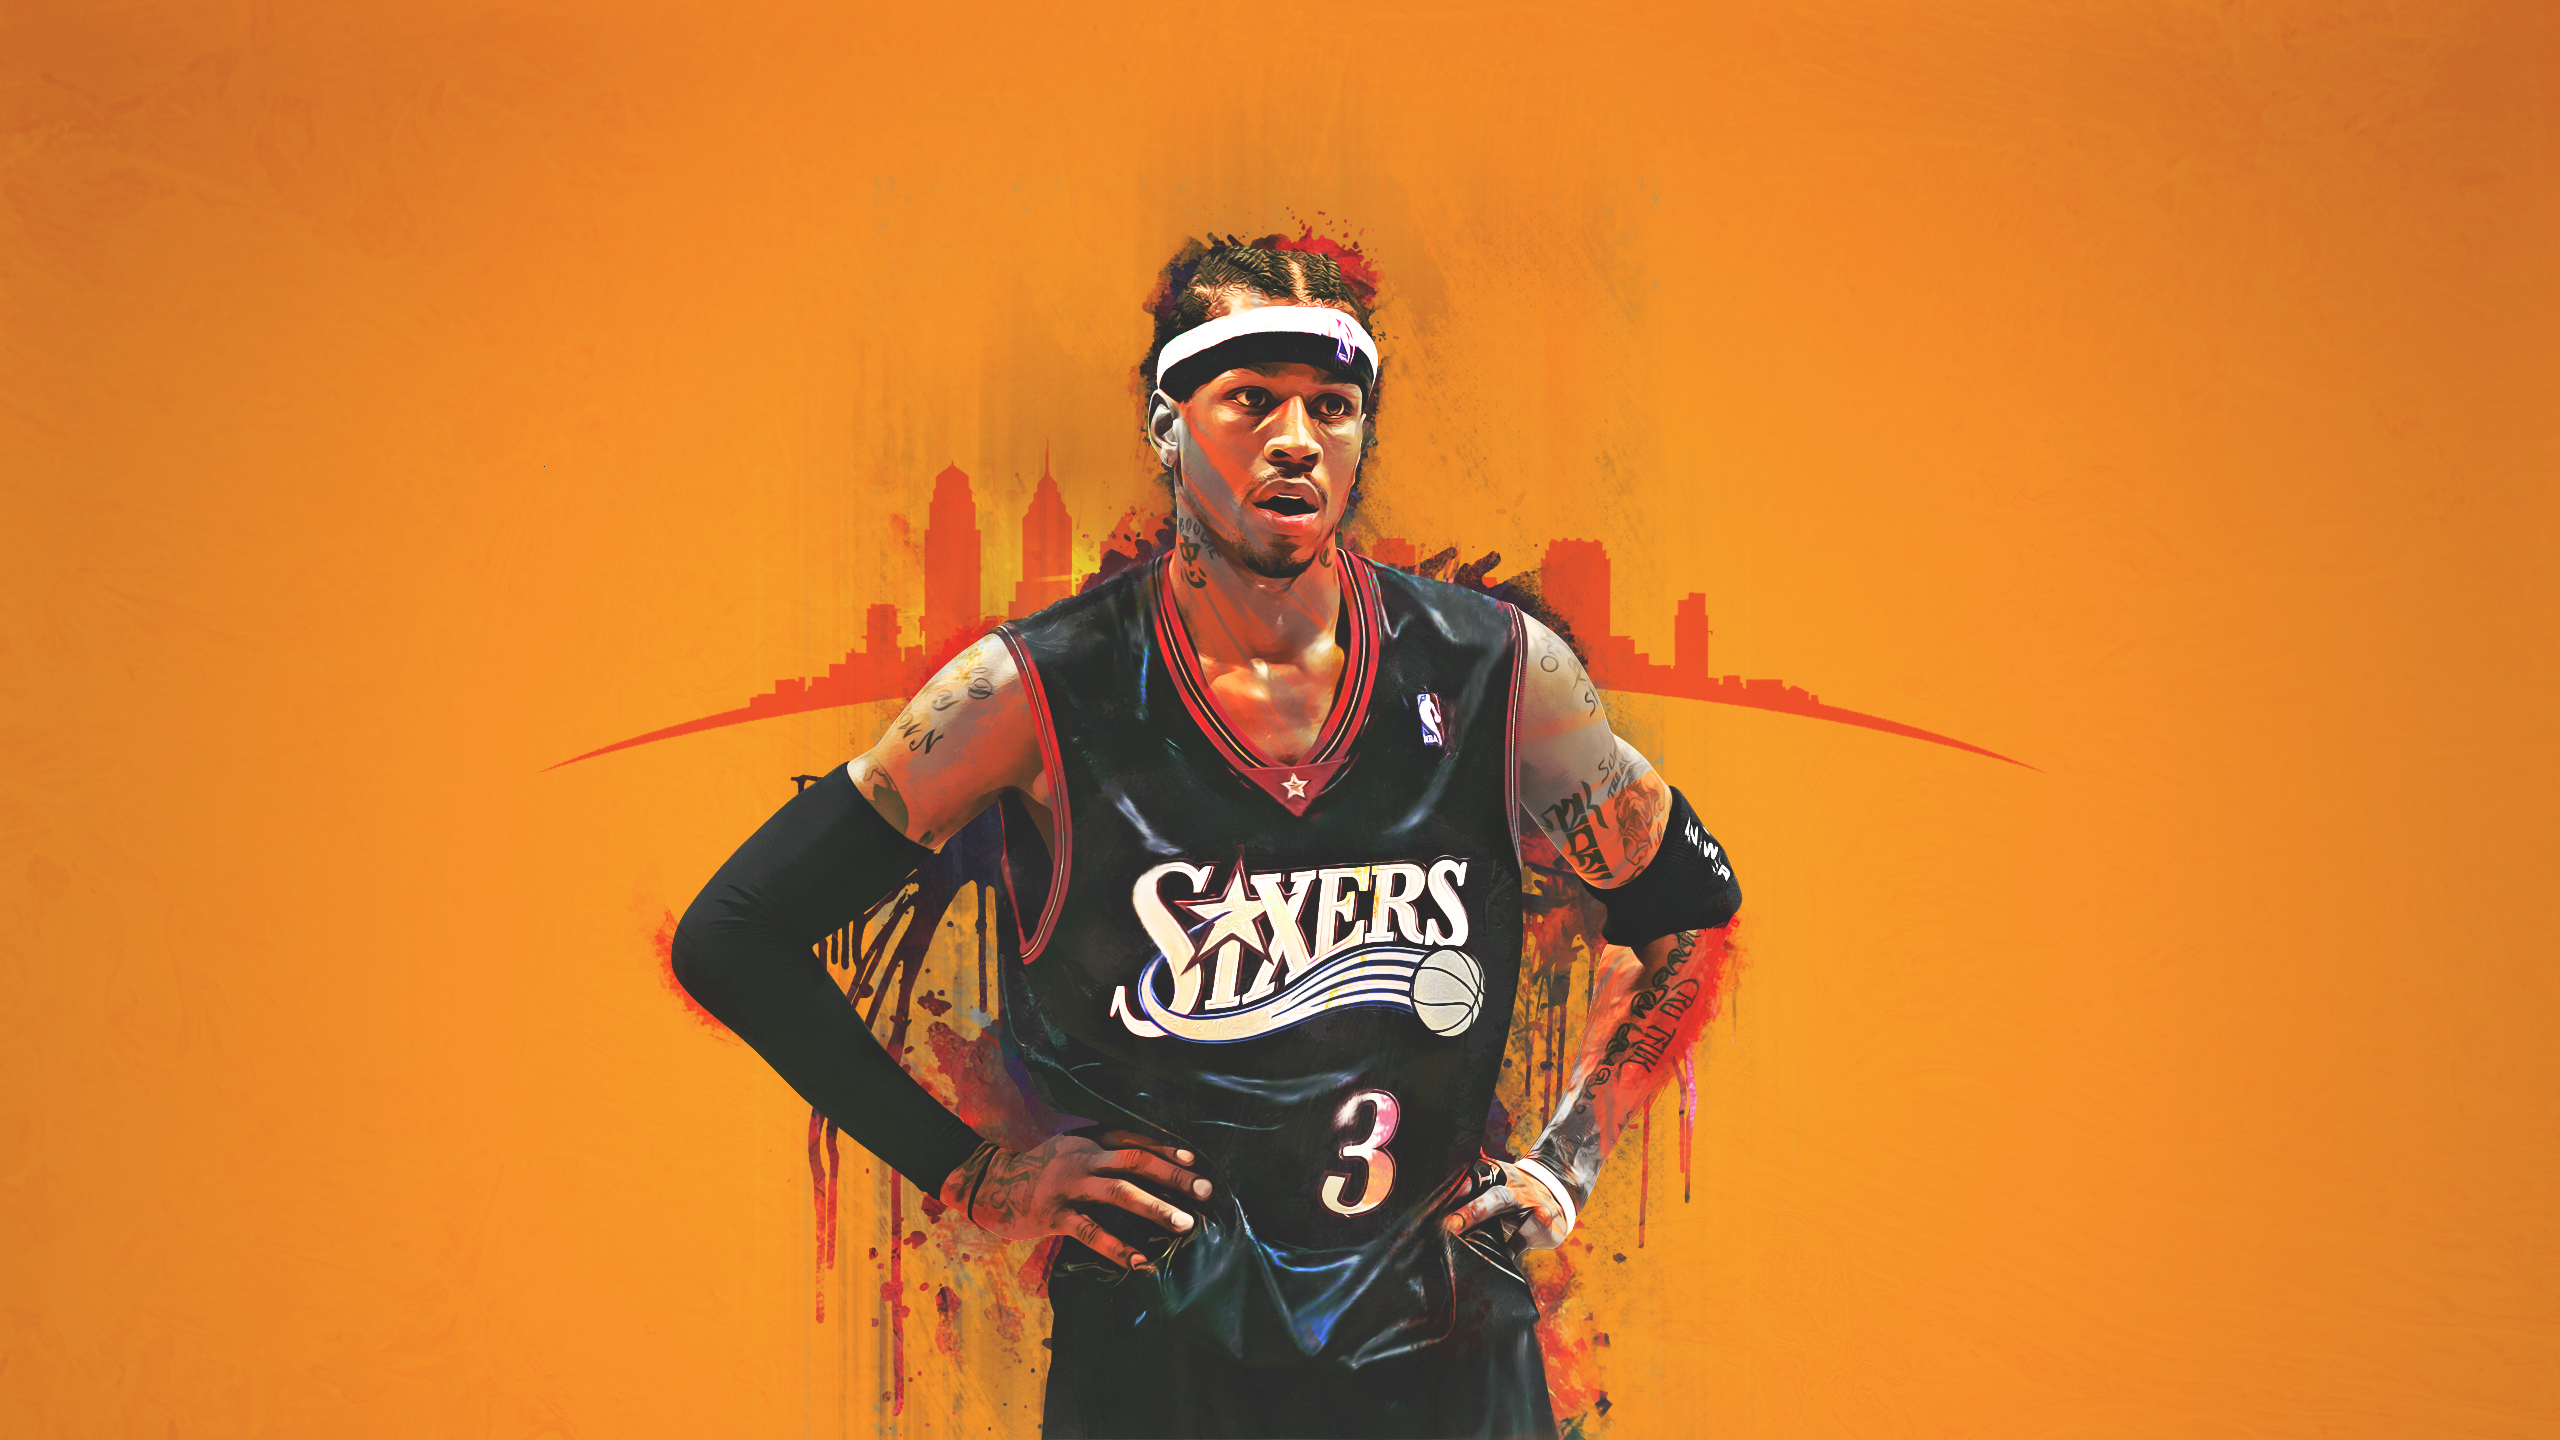 Kobe Bryant Wallpaper Hd Allen Iverson Backgrounds Pixelstalk Net